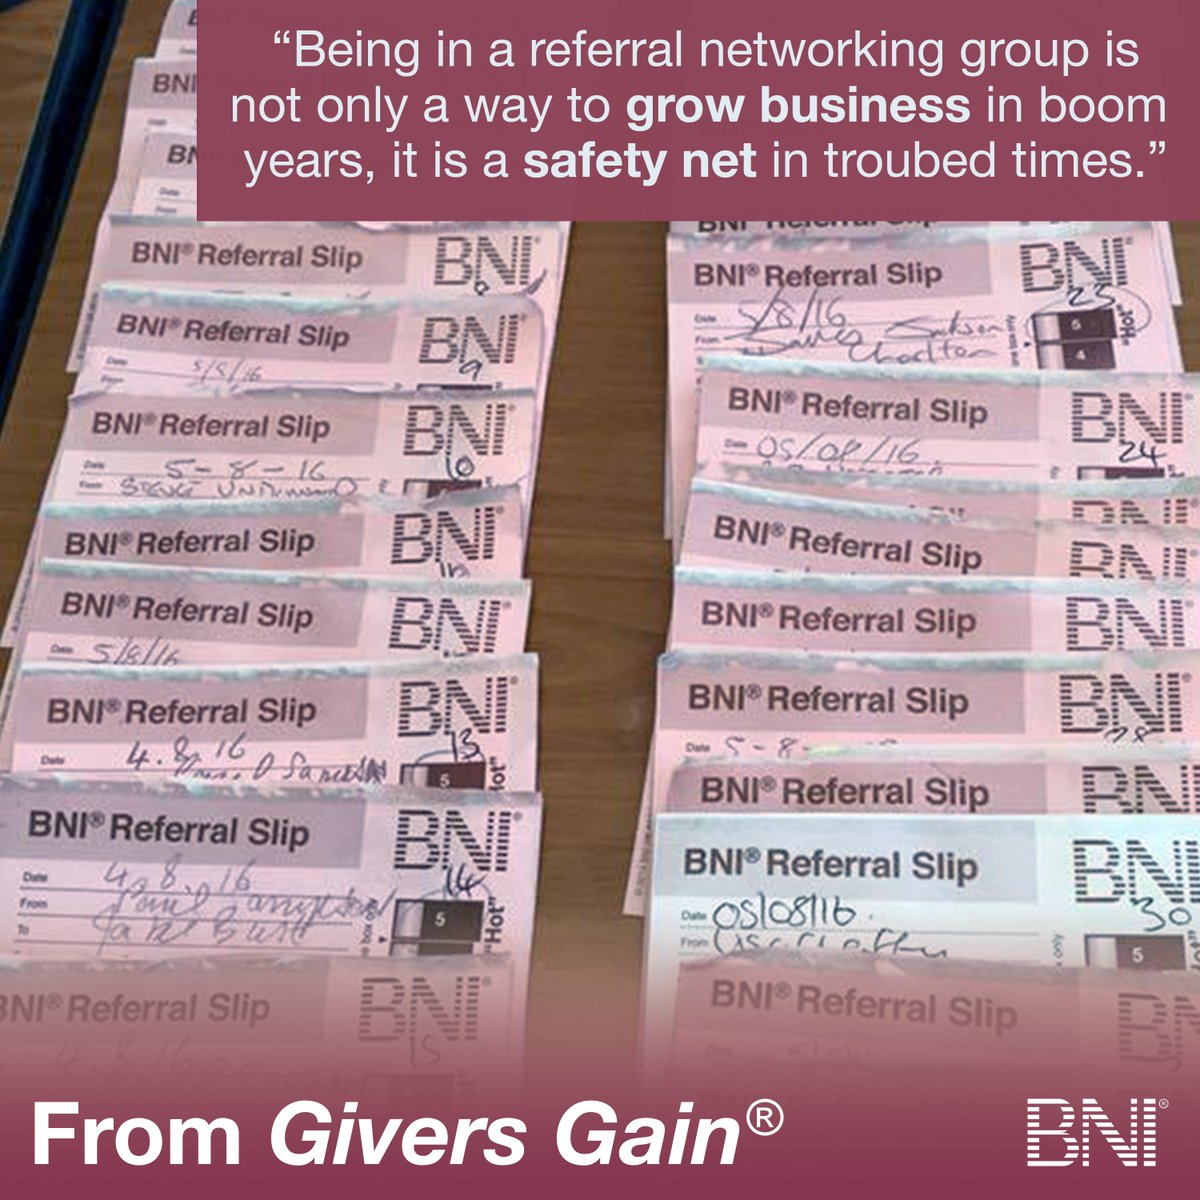 BNI could be your tool to build your business through referrals, regardless of the economic climate. https://t.co/yRk3EFAnp1